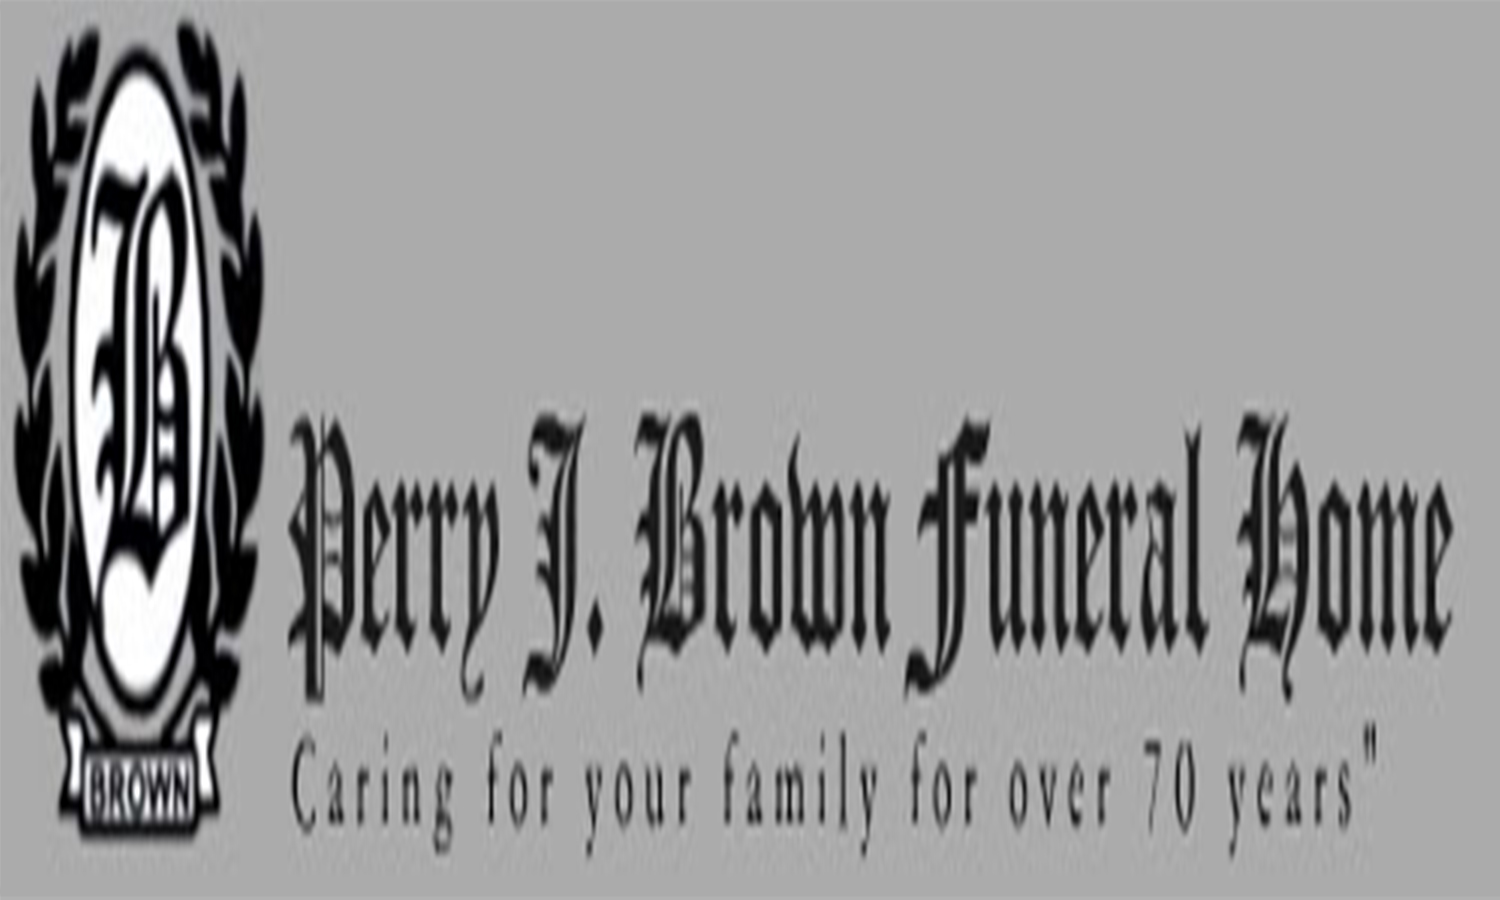 Perry J. Brown Funeral Home